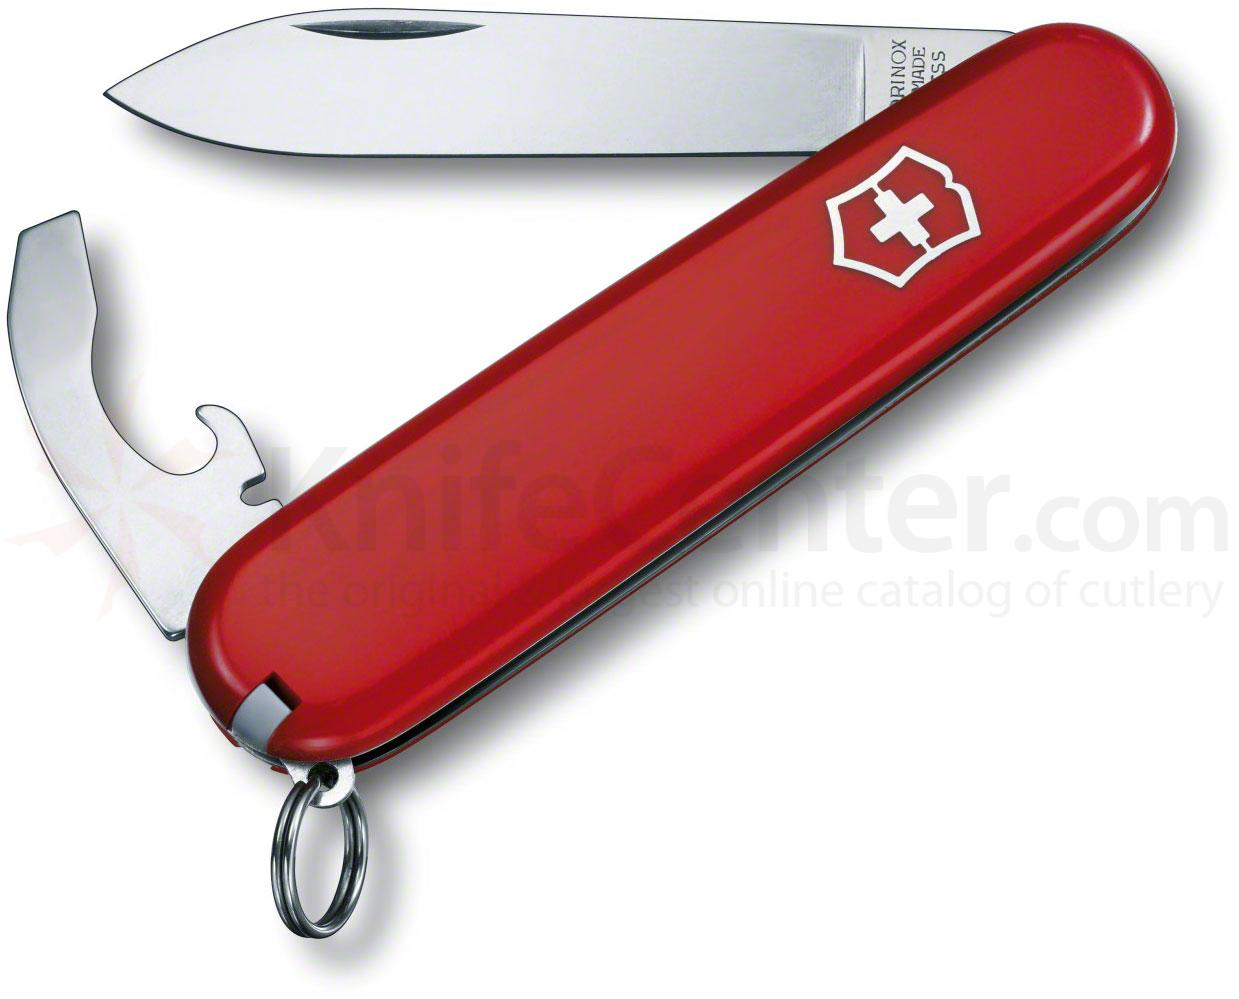 Victorinox Swiss Army Bantam Multi-Tool, Red, 3.31 inch Closed